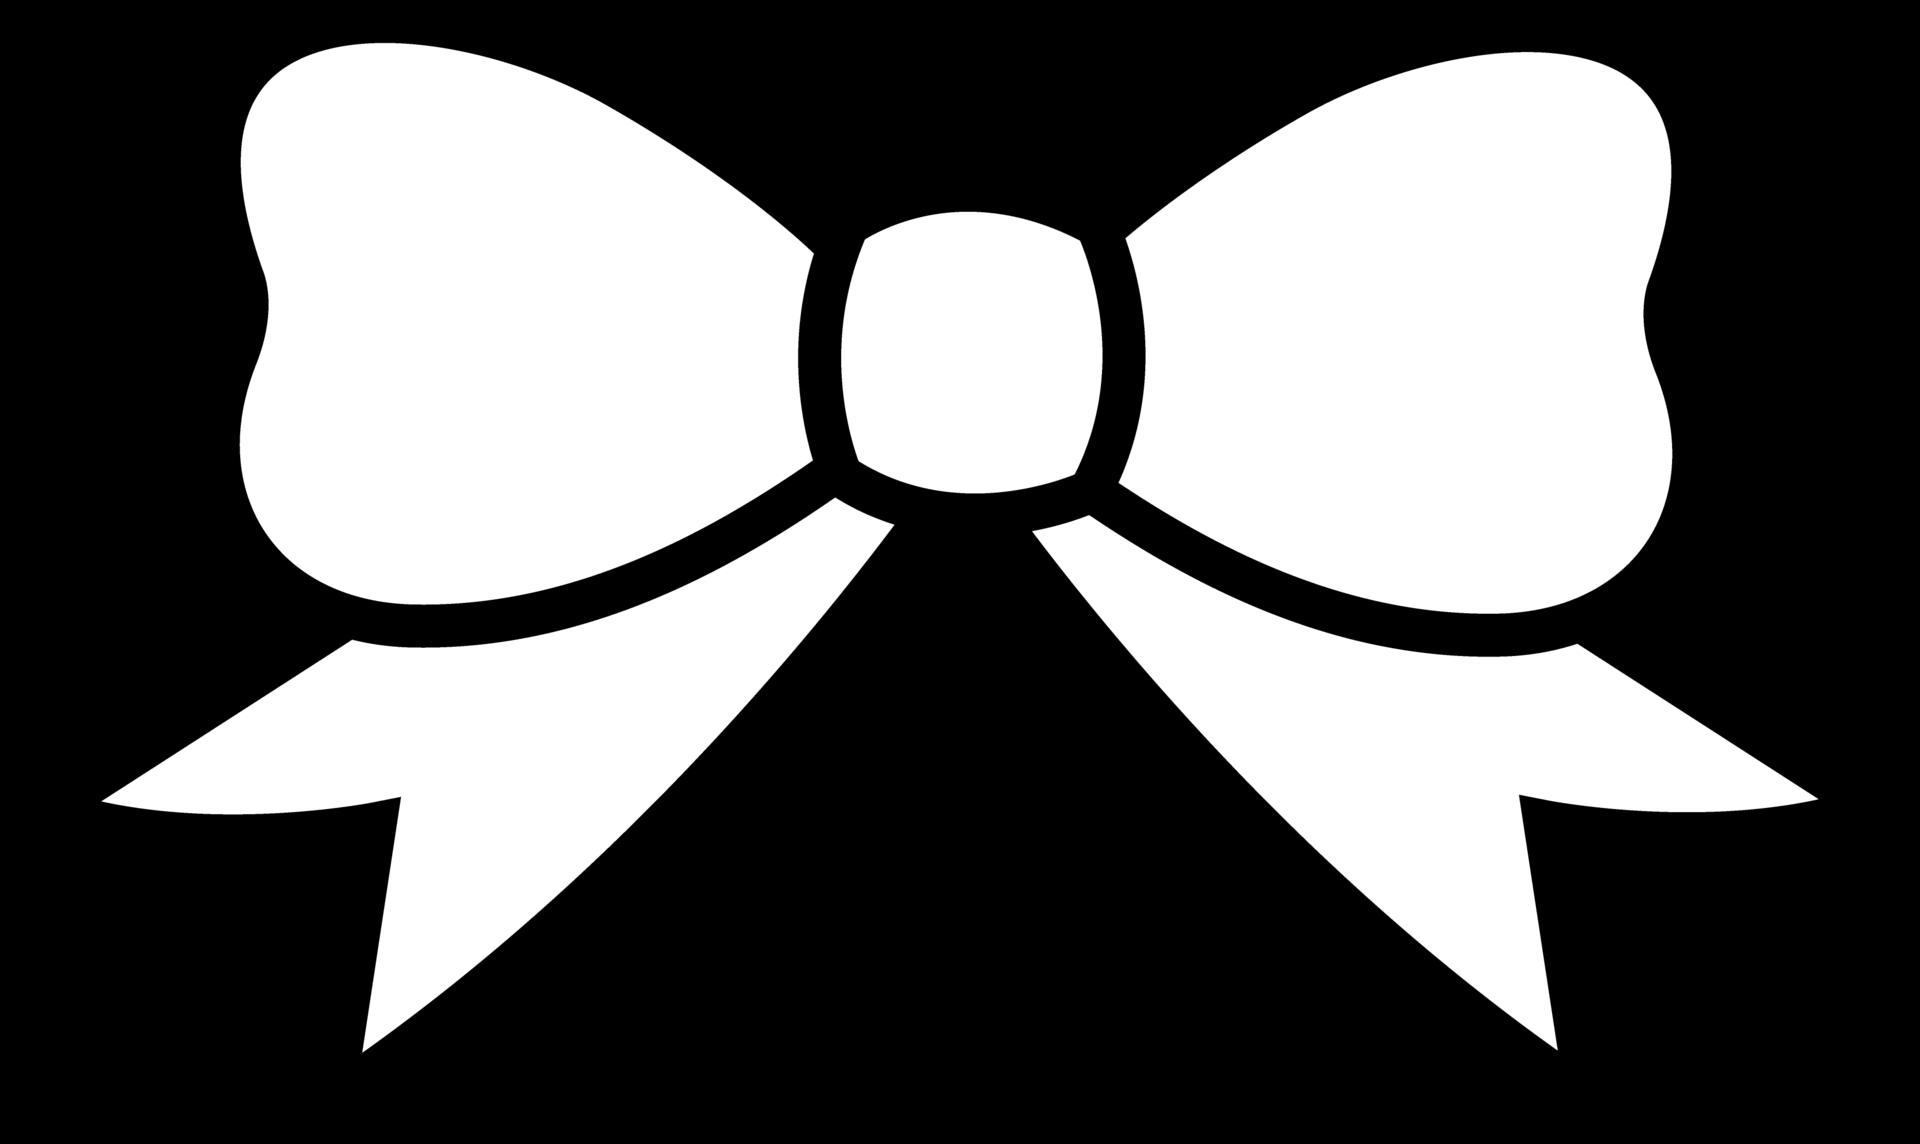 Bows clipart black and white. Hair bow clip art